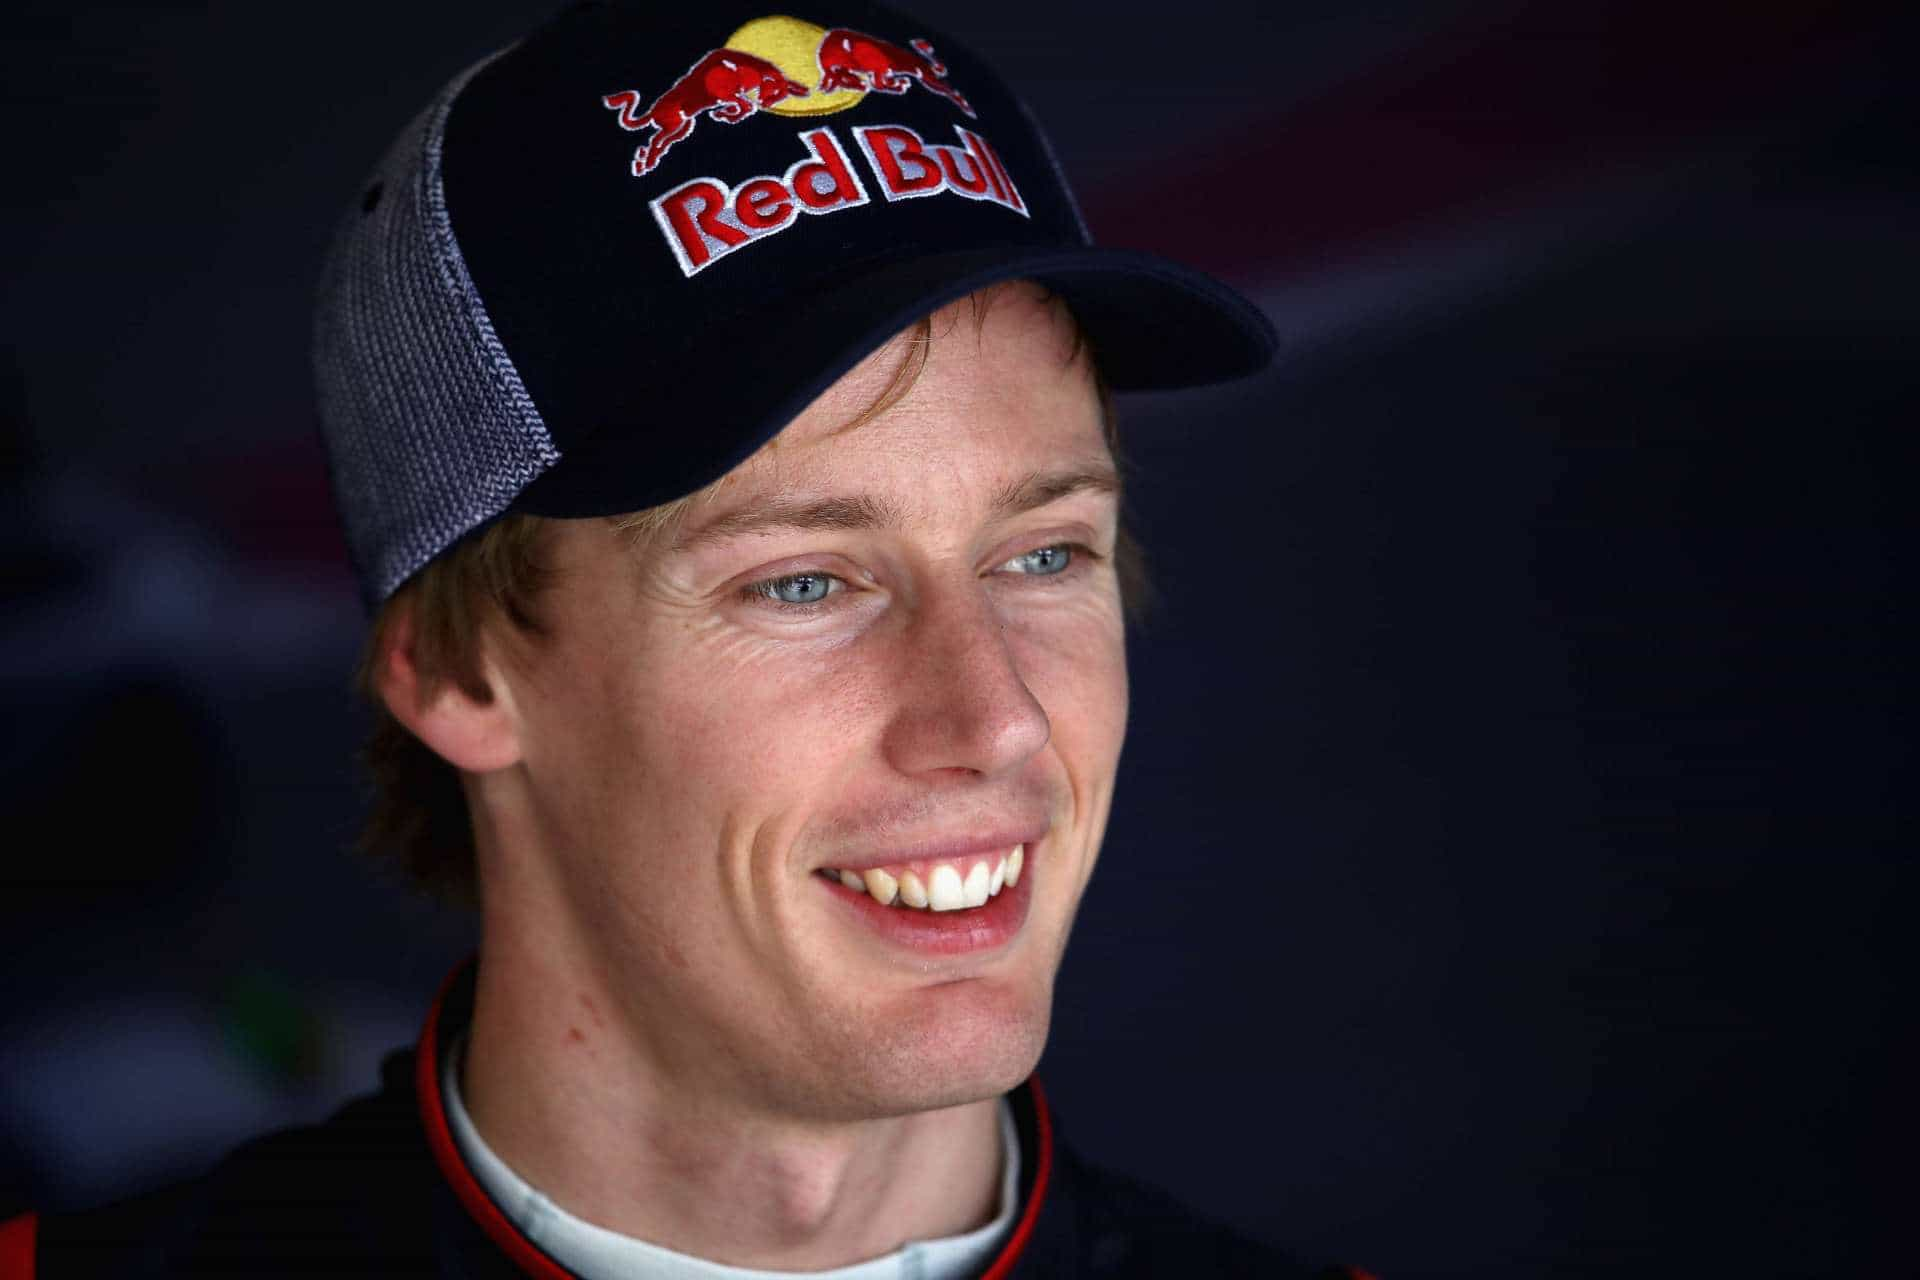 Hartley Toro Rosso number 29 USA GP Austin F1 2017 smile Photo Red Bull